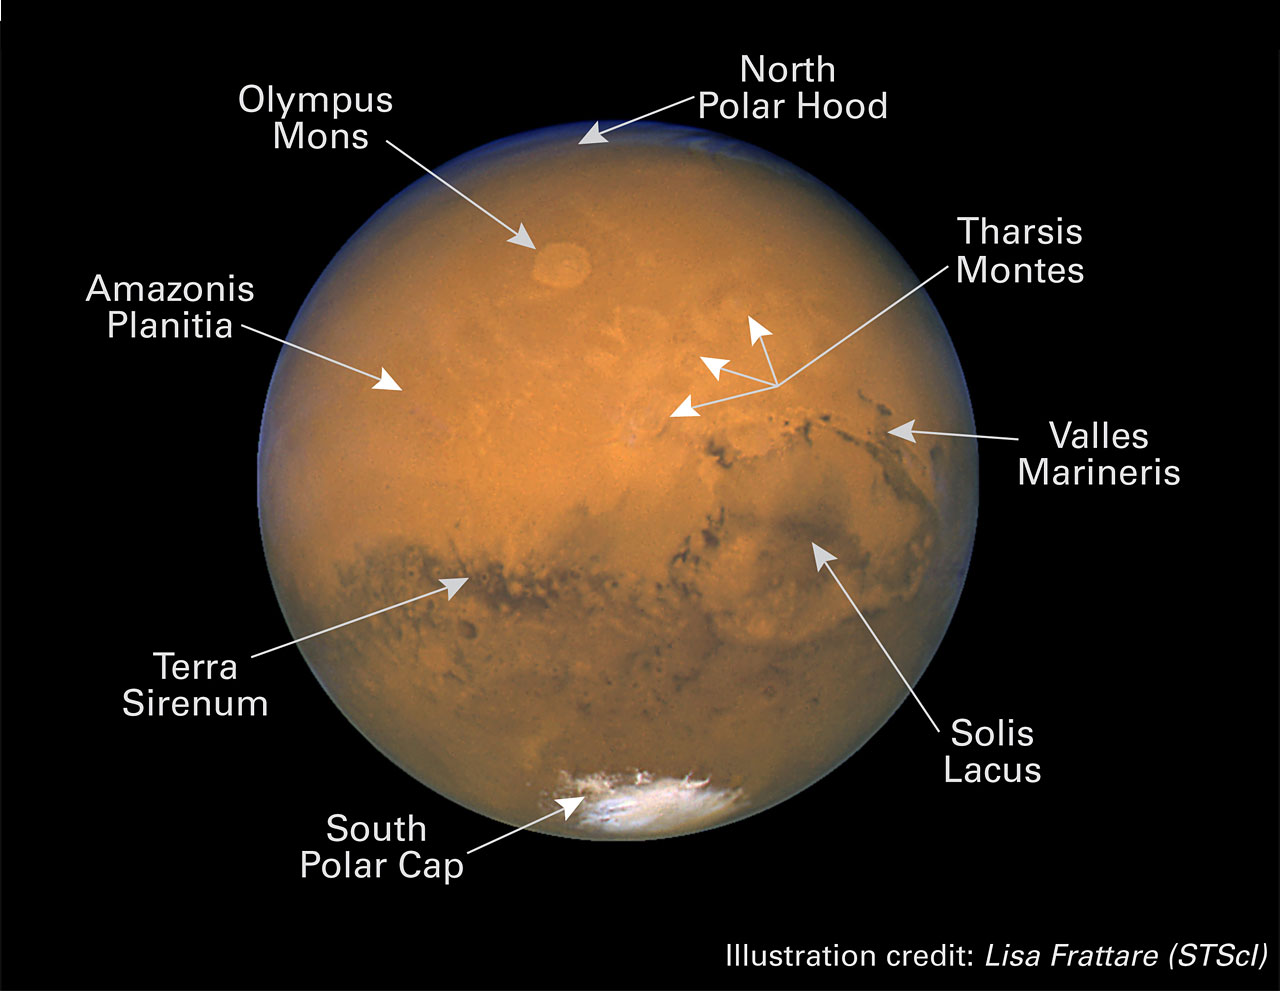 Mars anotated: next view